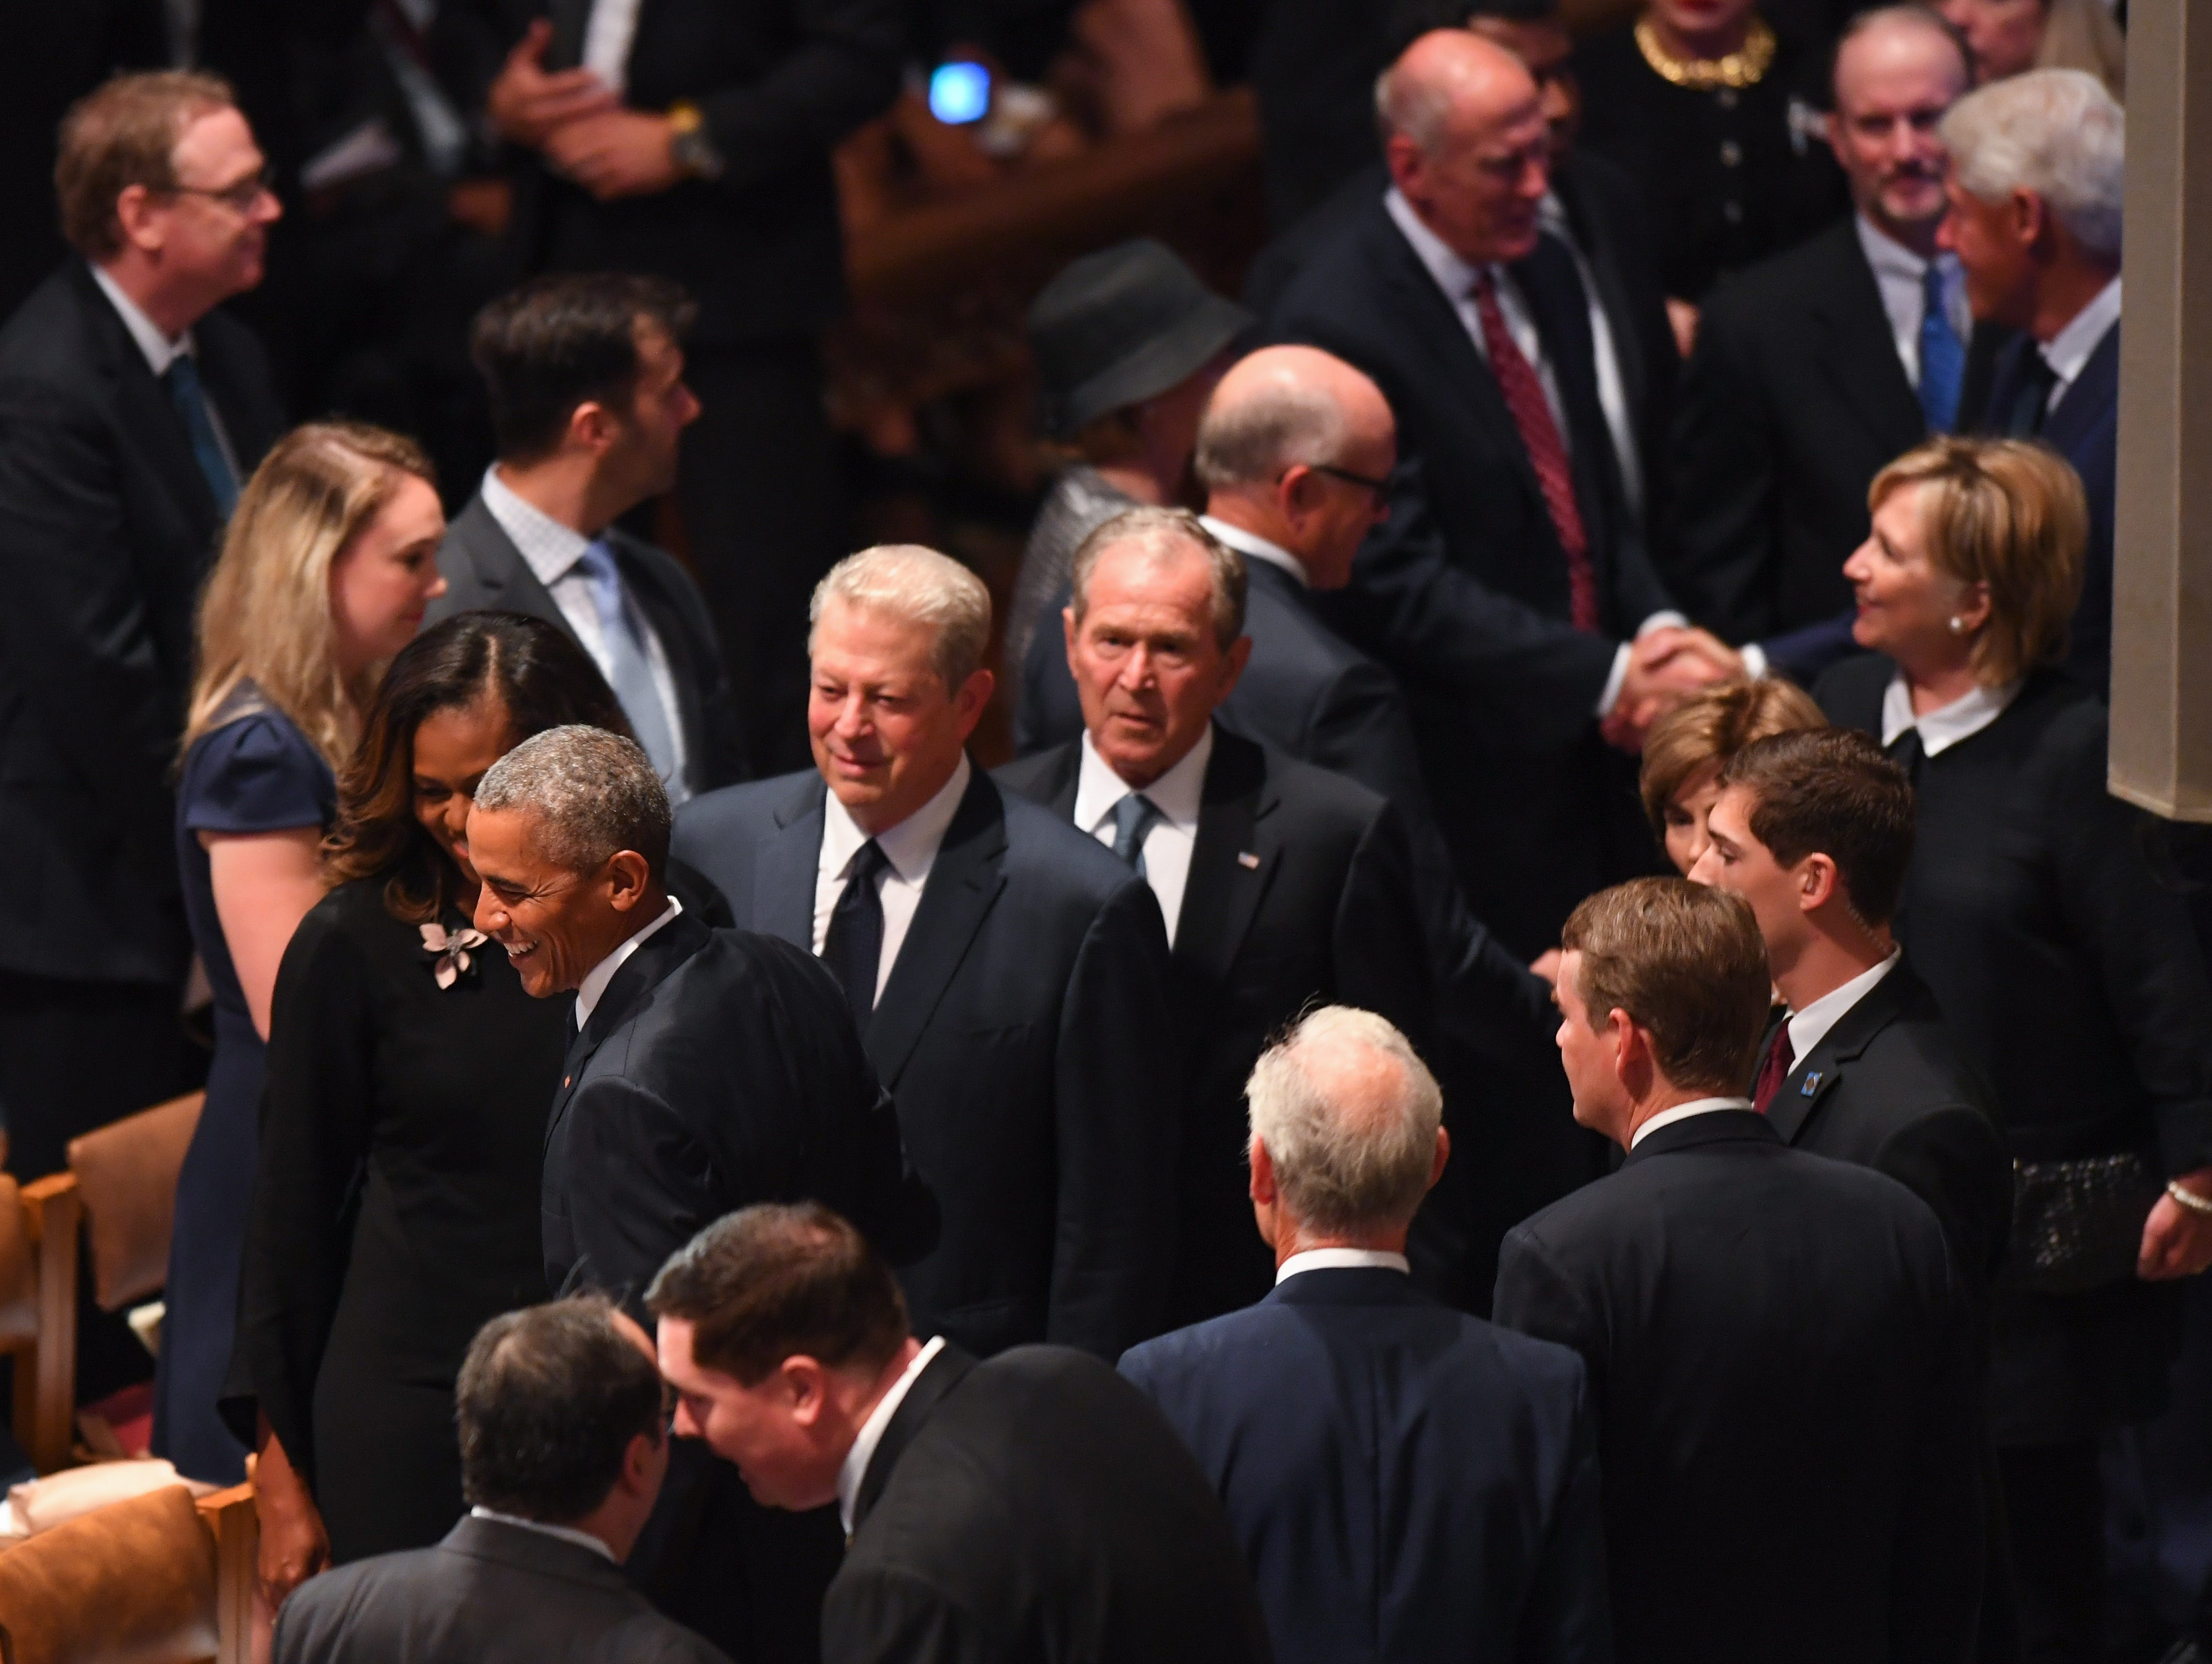 Former President Barack Obama and Michelle Obama arrive with former Vice  President Al Gore, former President George W. Bush and Laura Bush along with former Secretary of State Hillary Clinton and former President Bill Clinton at right, to the memorial service for John McCain.